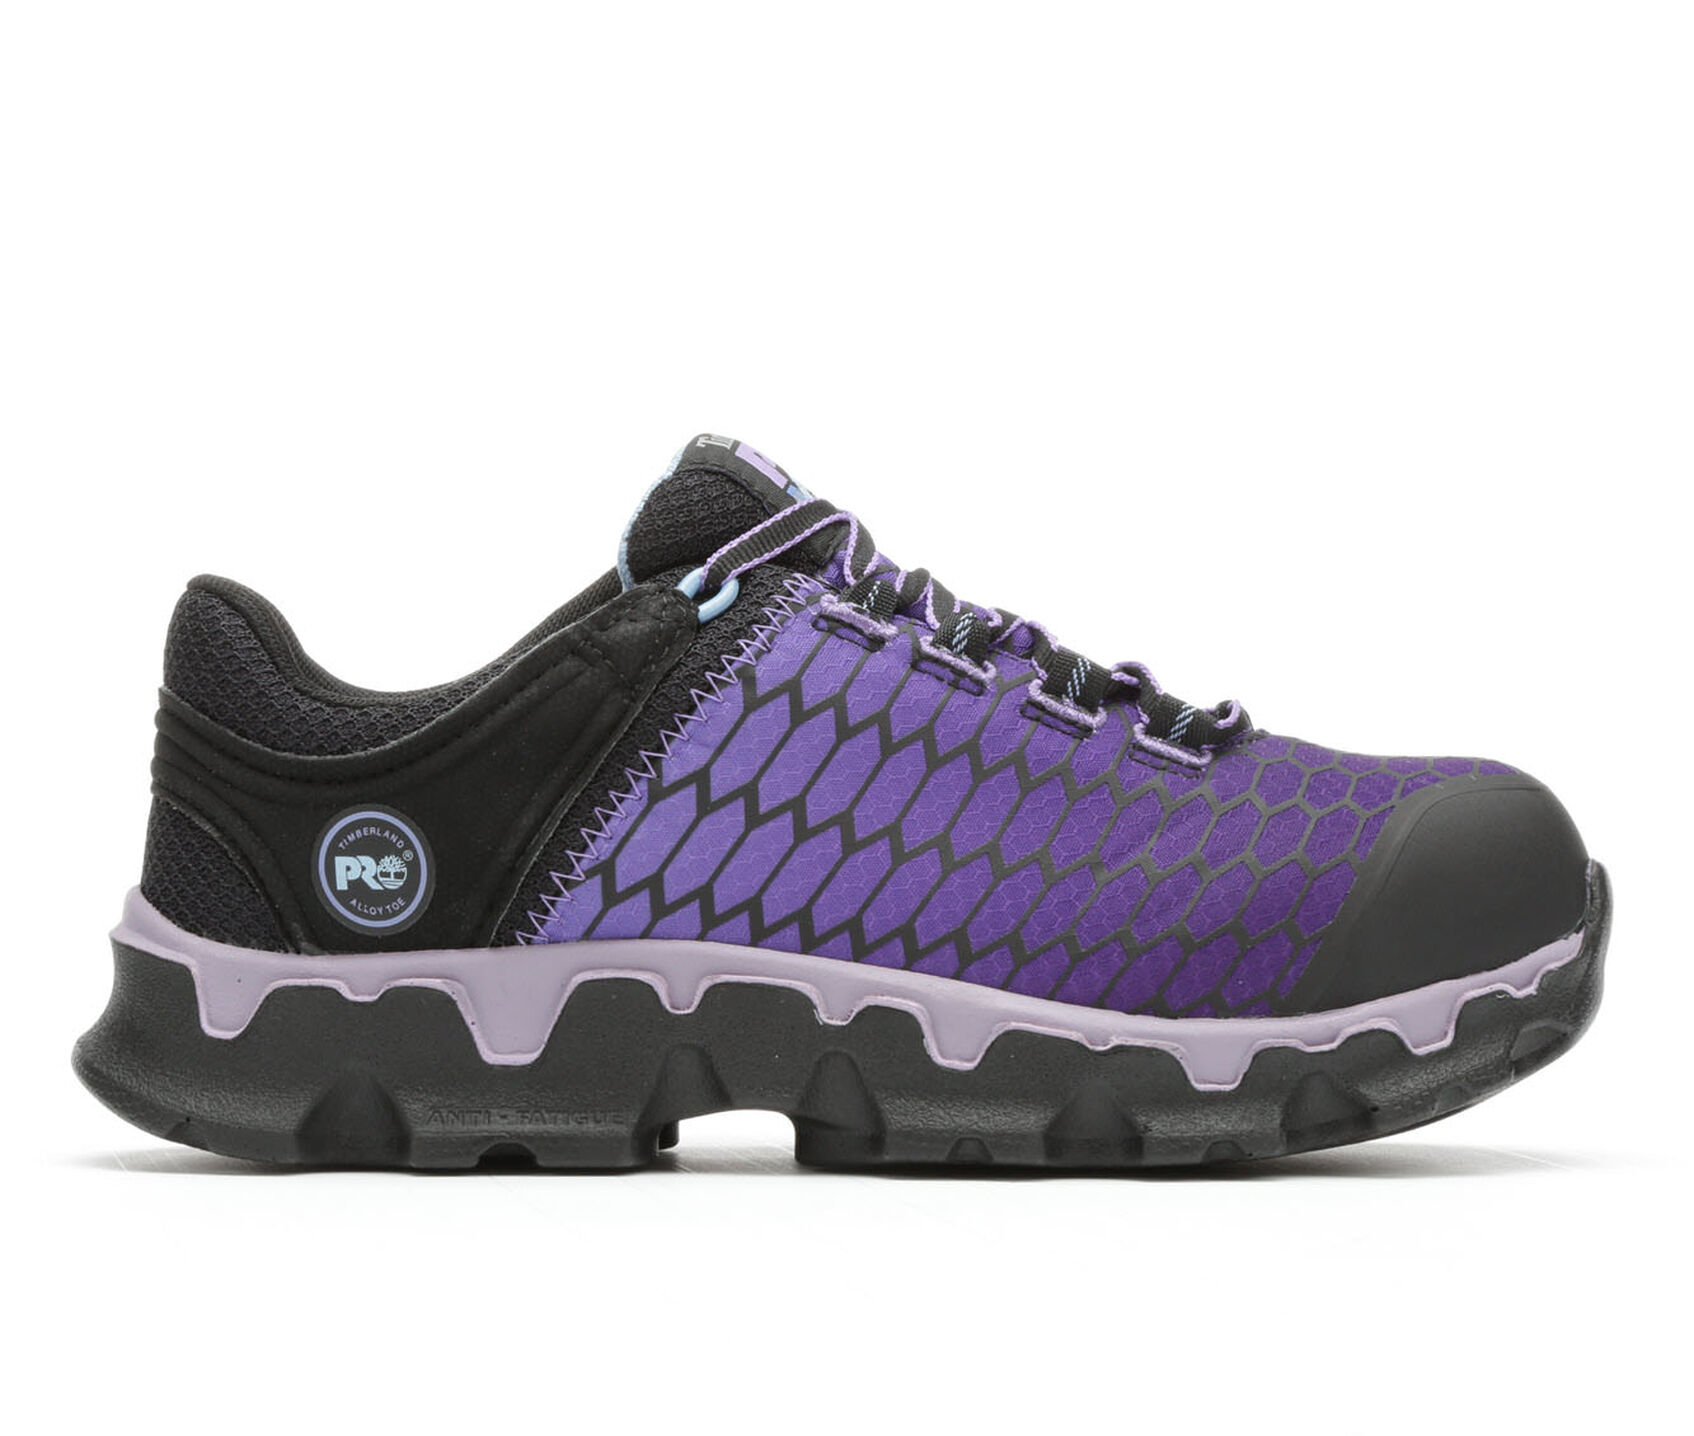 ... Timberland Pro Powertrain Sport Ladies A1H1S Work Shoes. Carousel  Controls Previous 53f5f05085